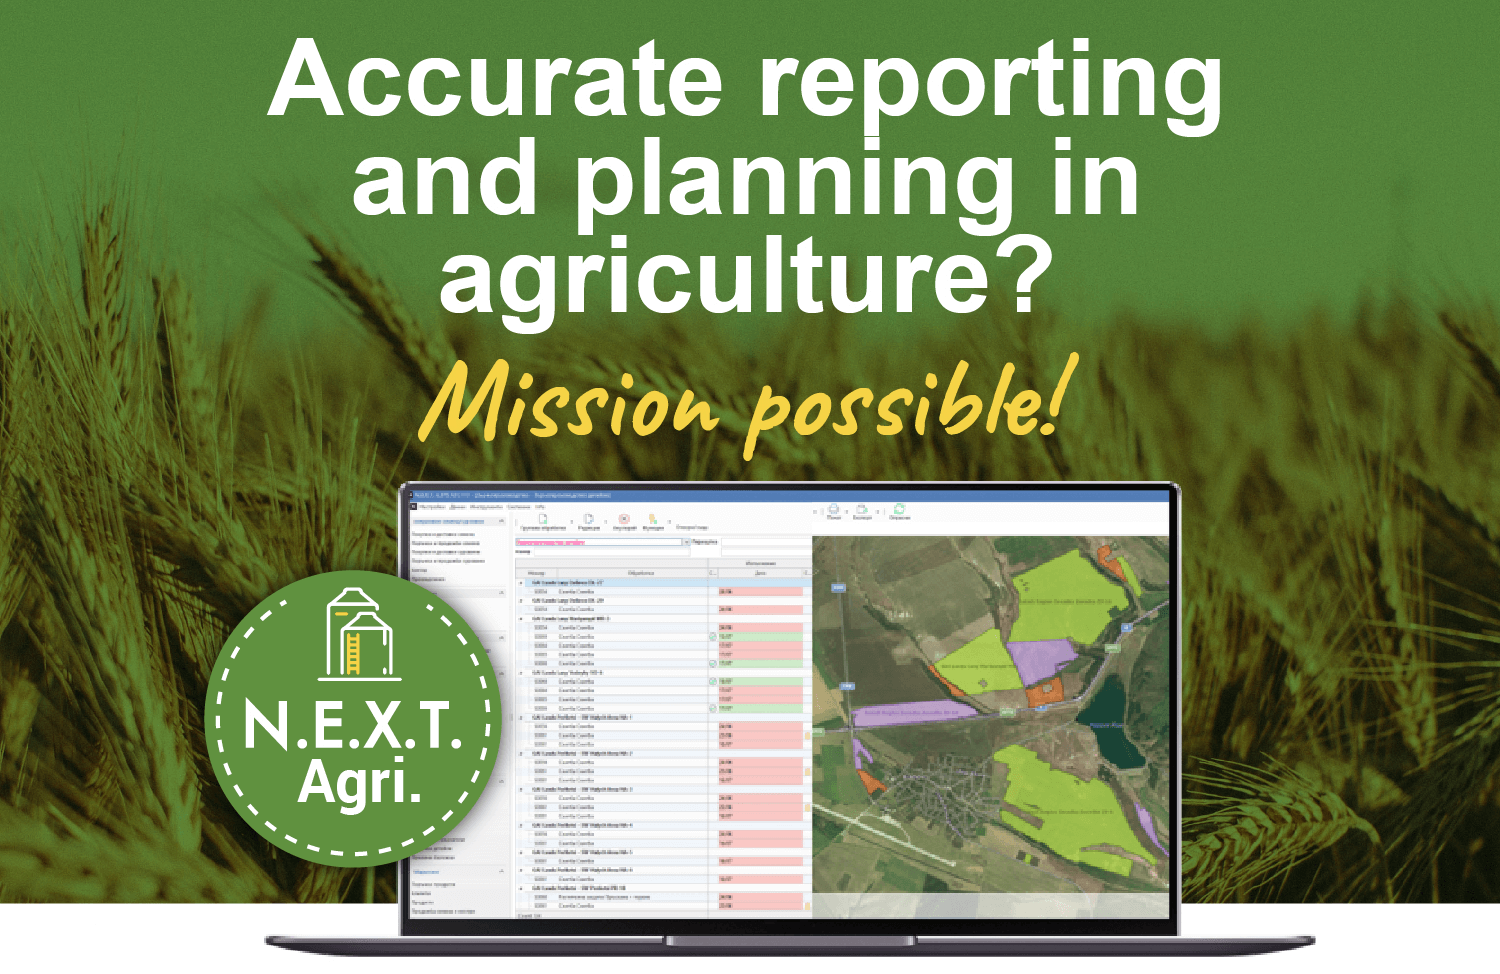 Specialized ERP software solution for agriculture and agribusiness